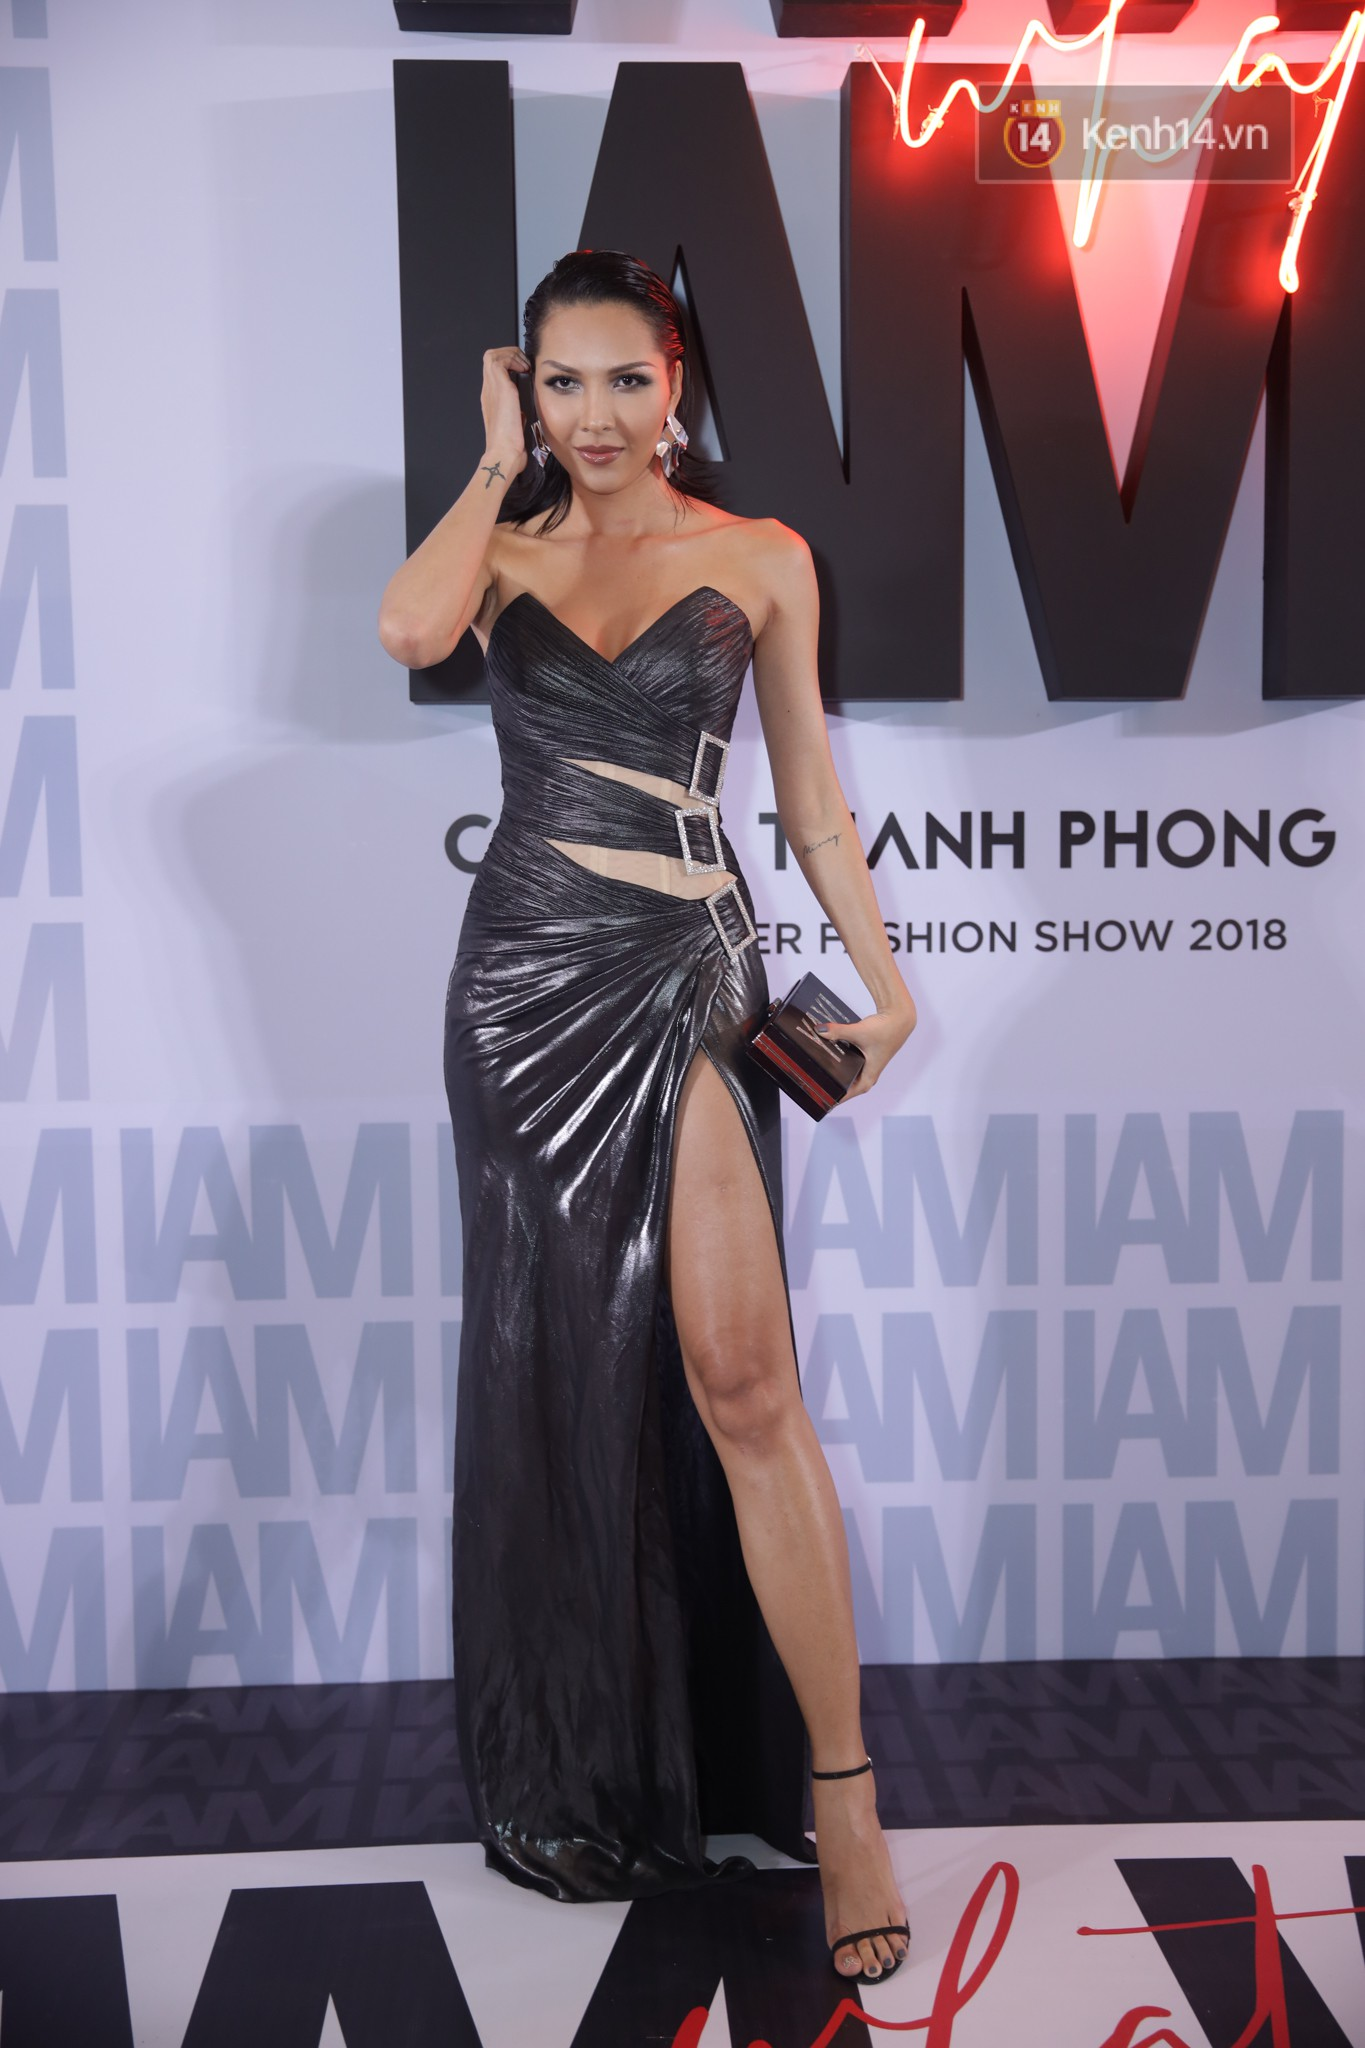 The red carpet Chung Thanh Phong show: It was able to test strange styles, as Quỳnh Anh Shyn caught birds with rain - Photo 20.